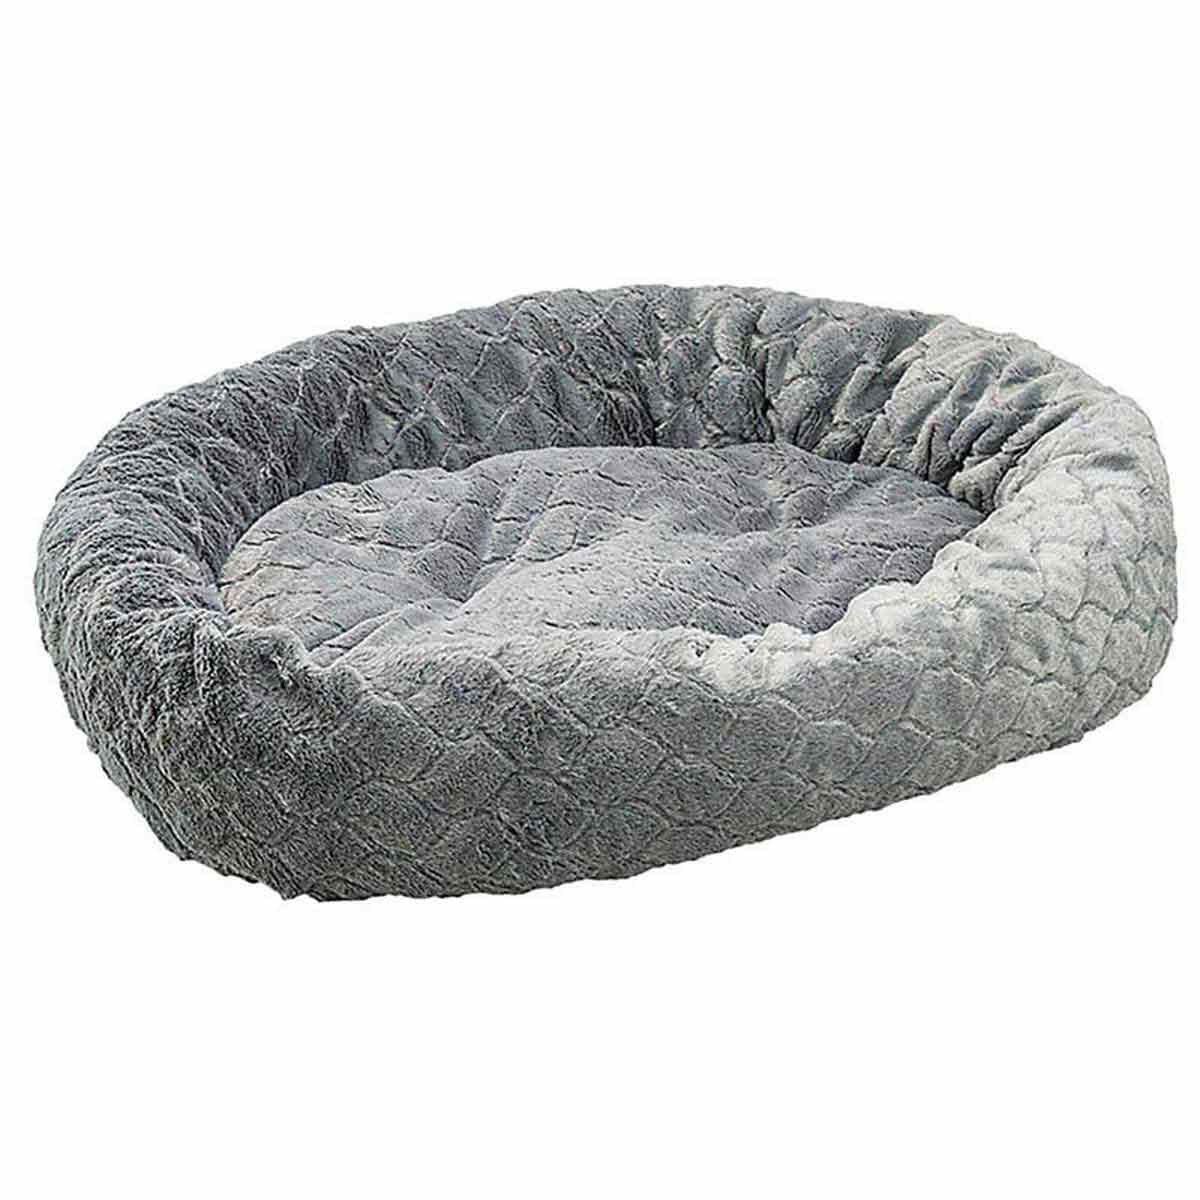 Sleep Zone Dark Grey Diamond Cut Lounger Oval Cuddler Bed for Pets - 31 inch